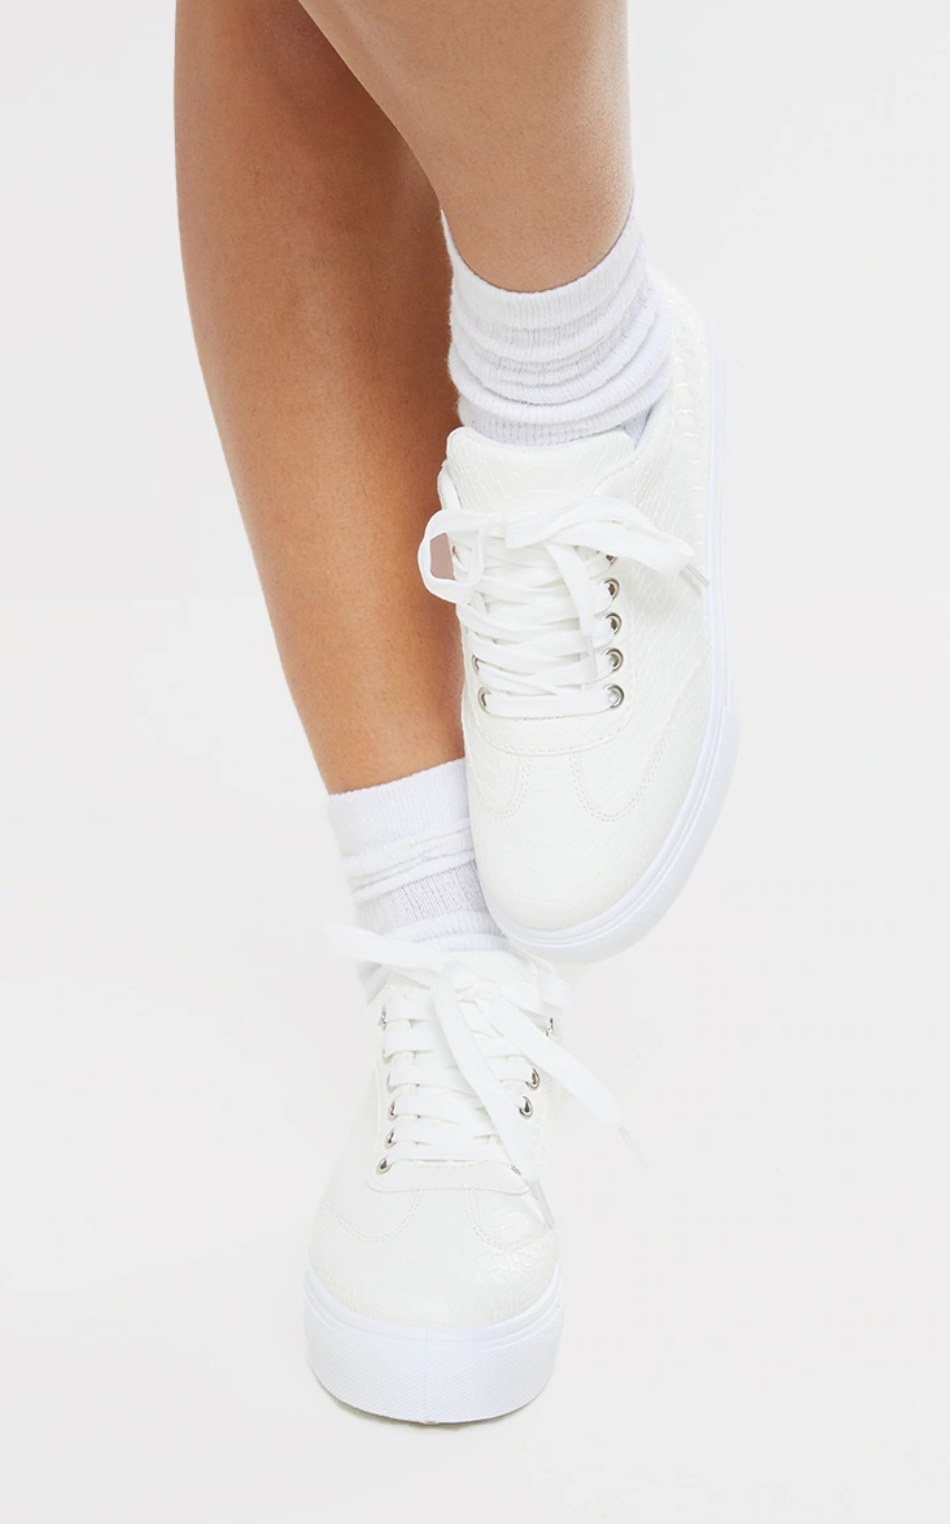 model's legs wearing scrunched socks and the platform sneakers